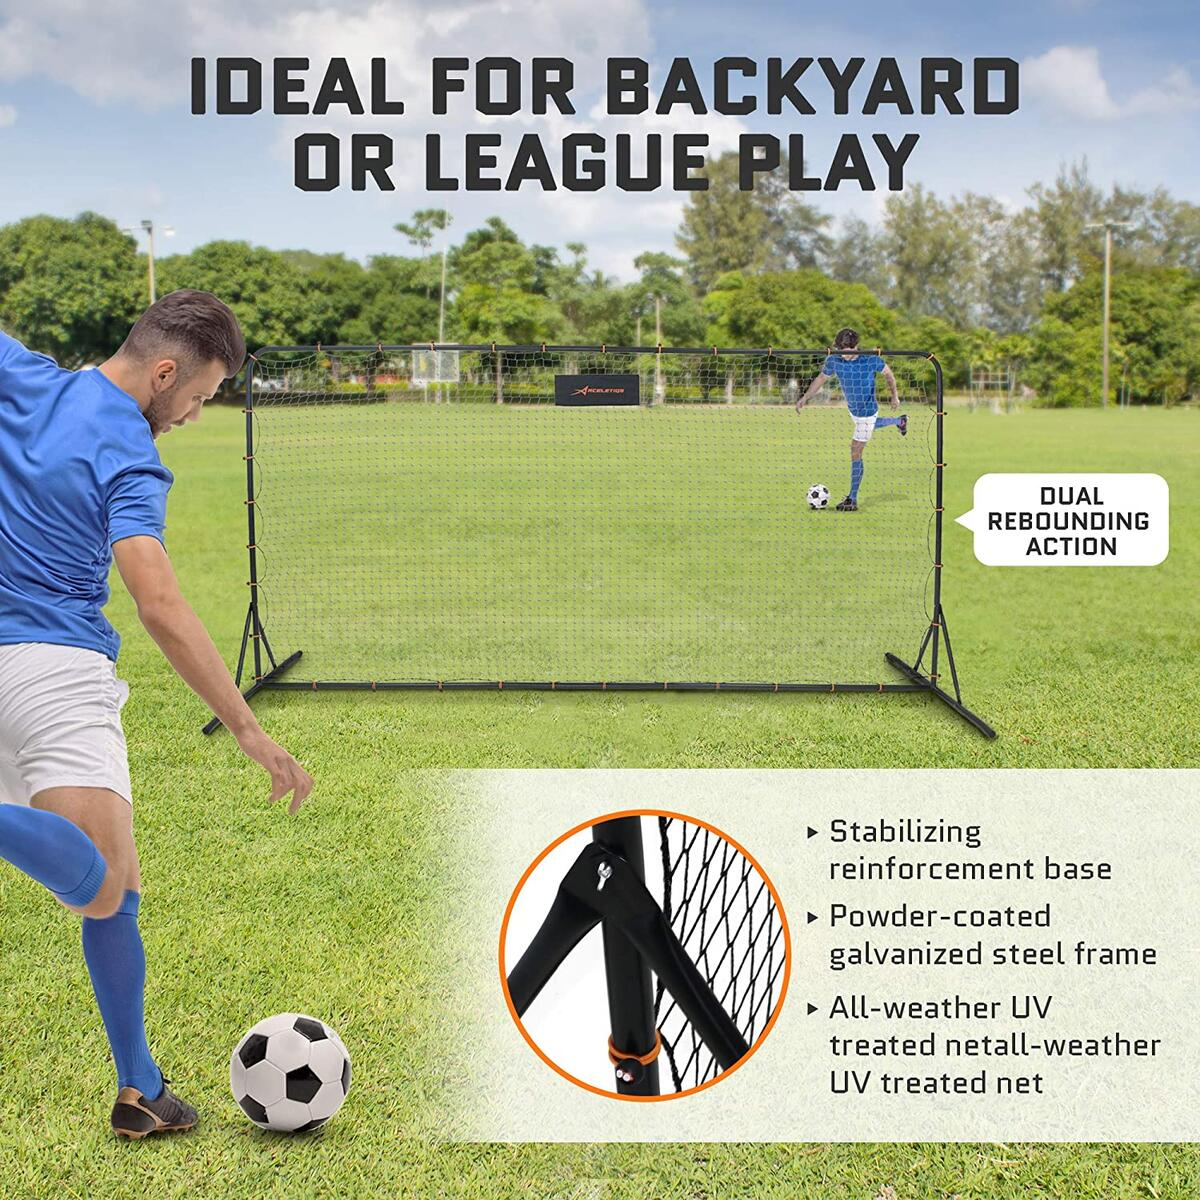 ACELETIQS Soccer Rebounder 6x12 Feet Practice Training Net | Portable, Easy Assembly, Steel Frame | Perfect for Practicing Backyard Volley, Solo Training,Kickback, Passing, Pitchback